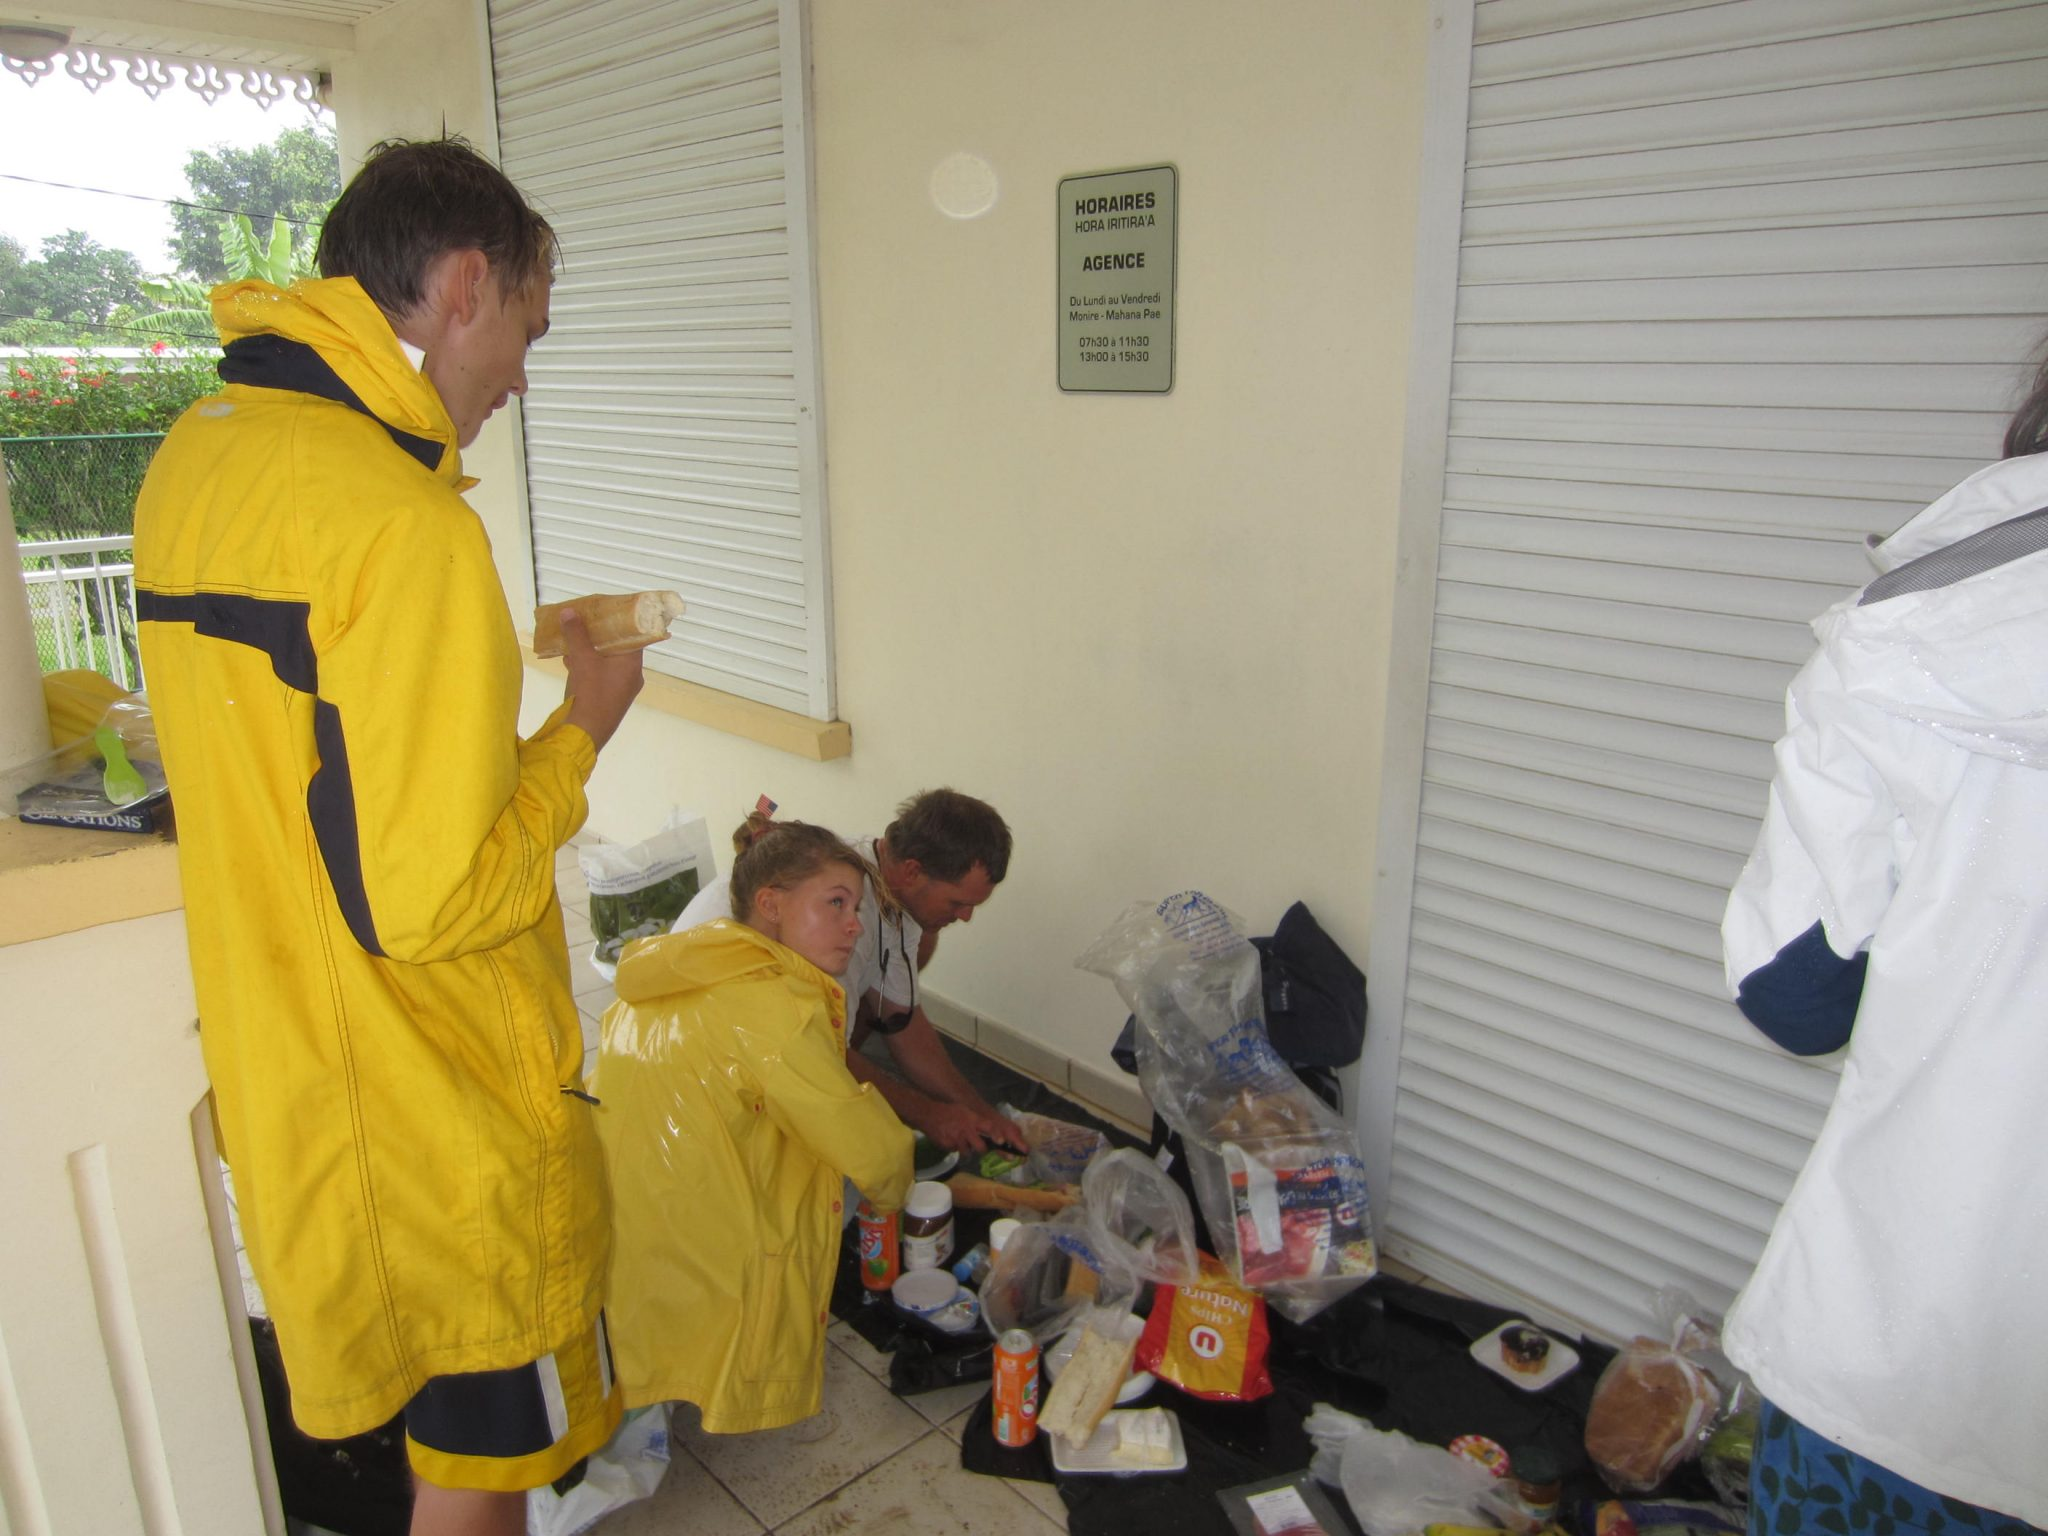 47. During a rainstorm, Sailors for Christ members enjoyed a feast and a banana split together to celebrate the 4th of July on the porch of a Bora Bora bank.